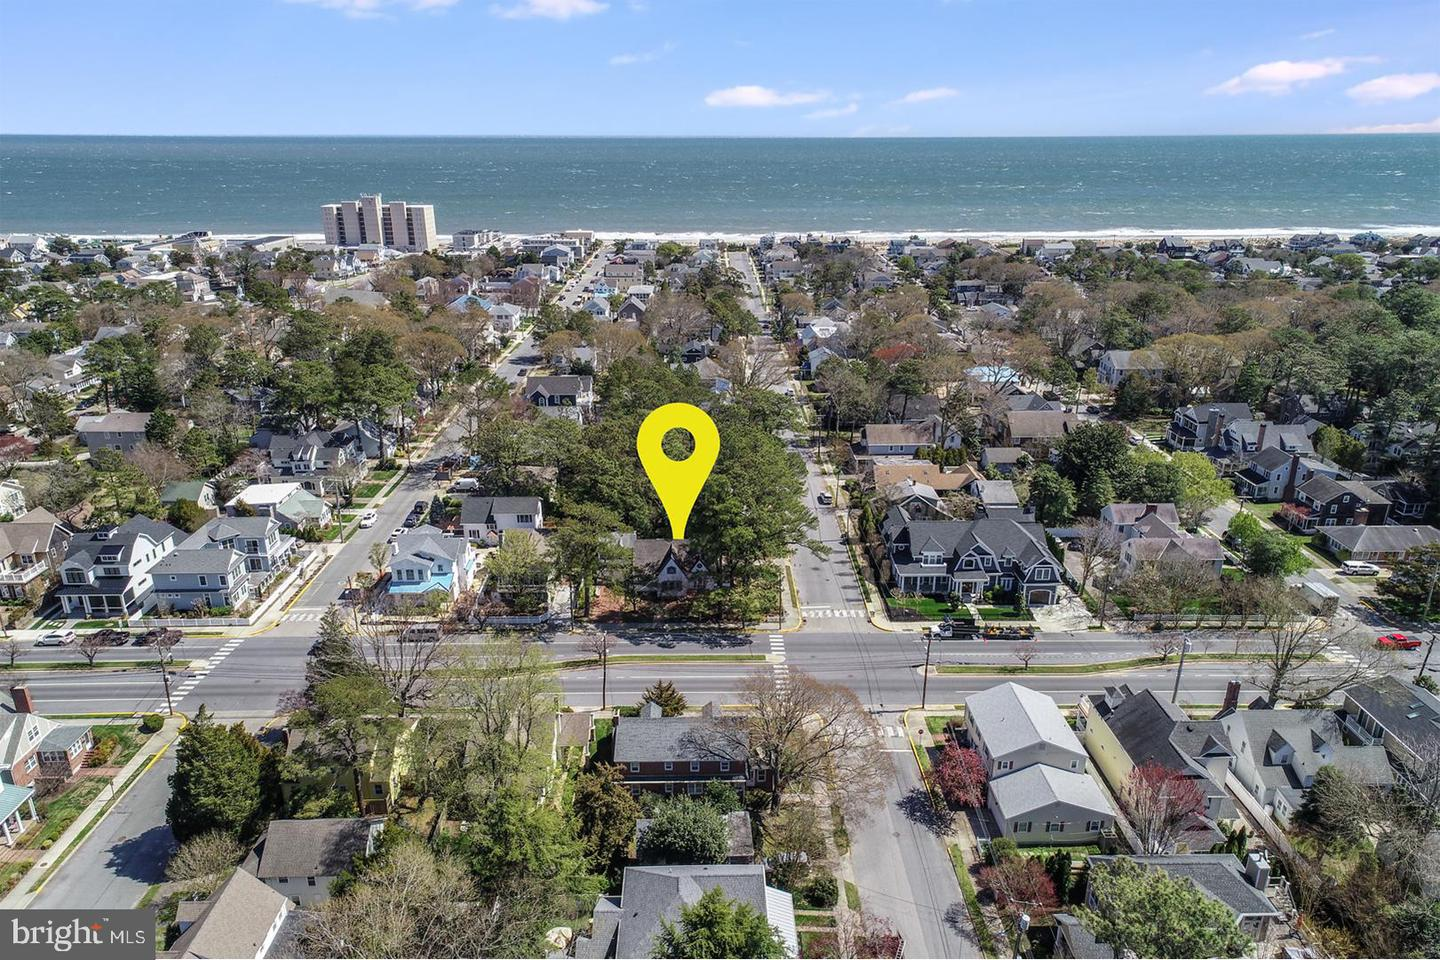 DESU159396-304092083512-2020-05-29-09-11-01 Sold Listings - Rehoboth Beach Real Estate - Bryce Lingo and Shaun Tull REALTORS, Rehoboth Beach, Delaware